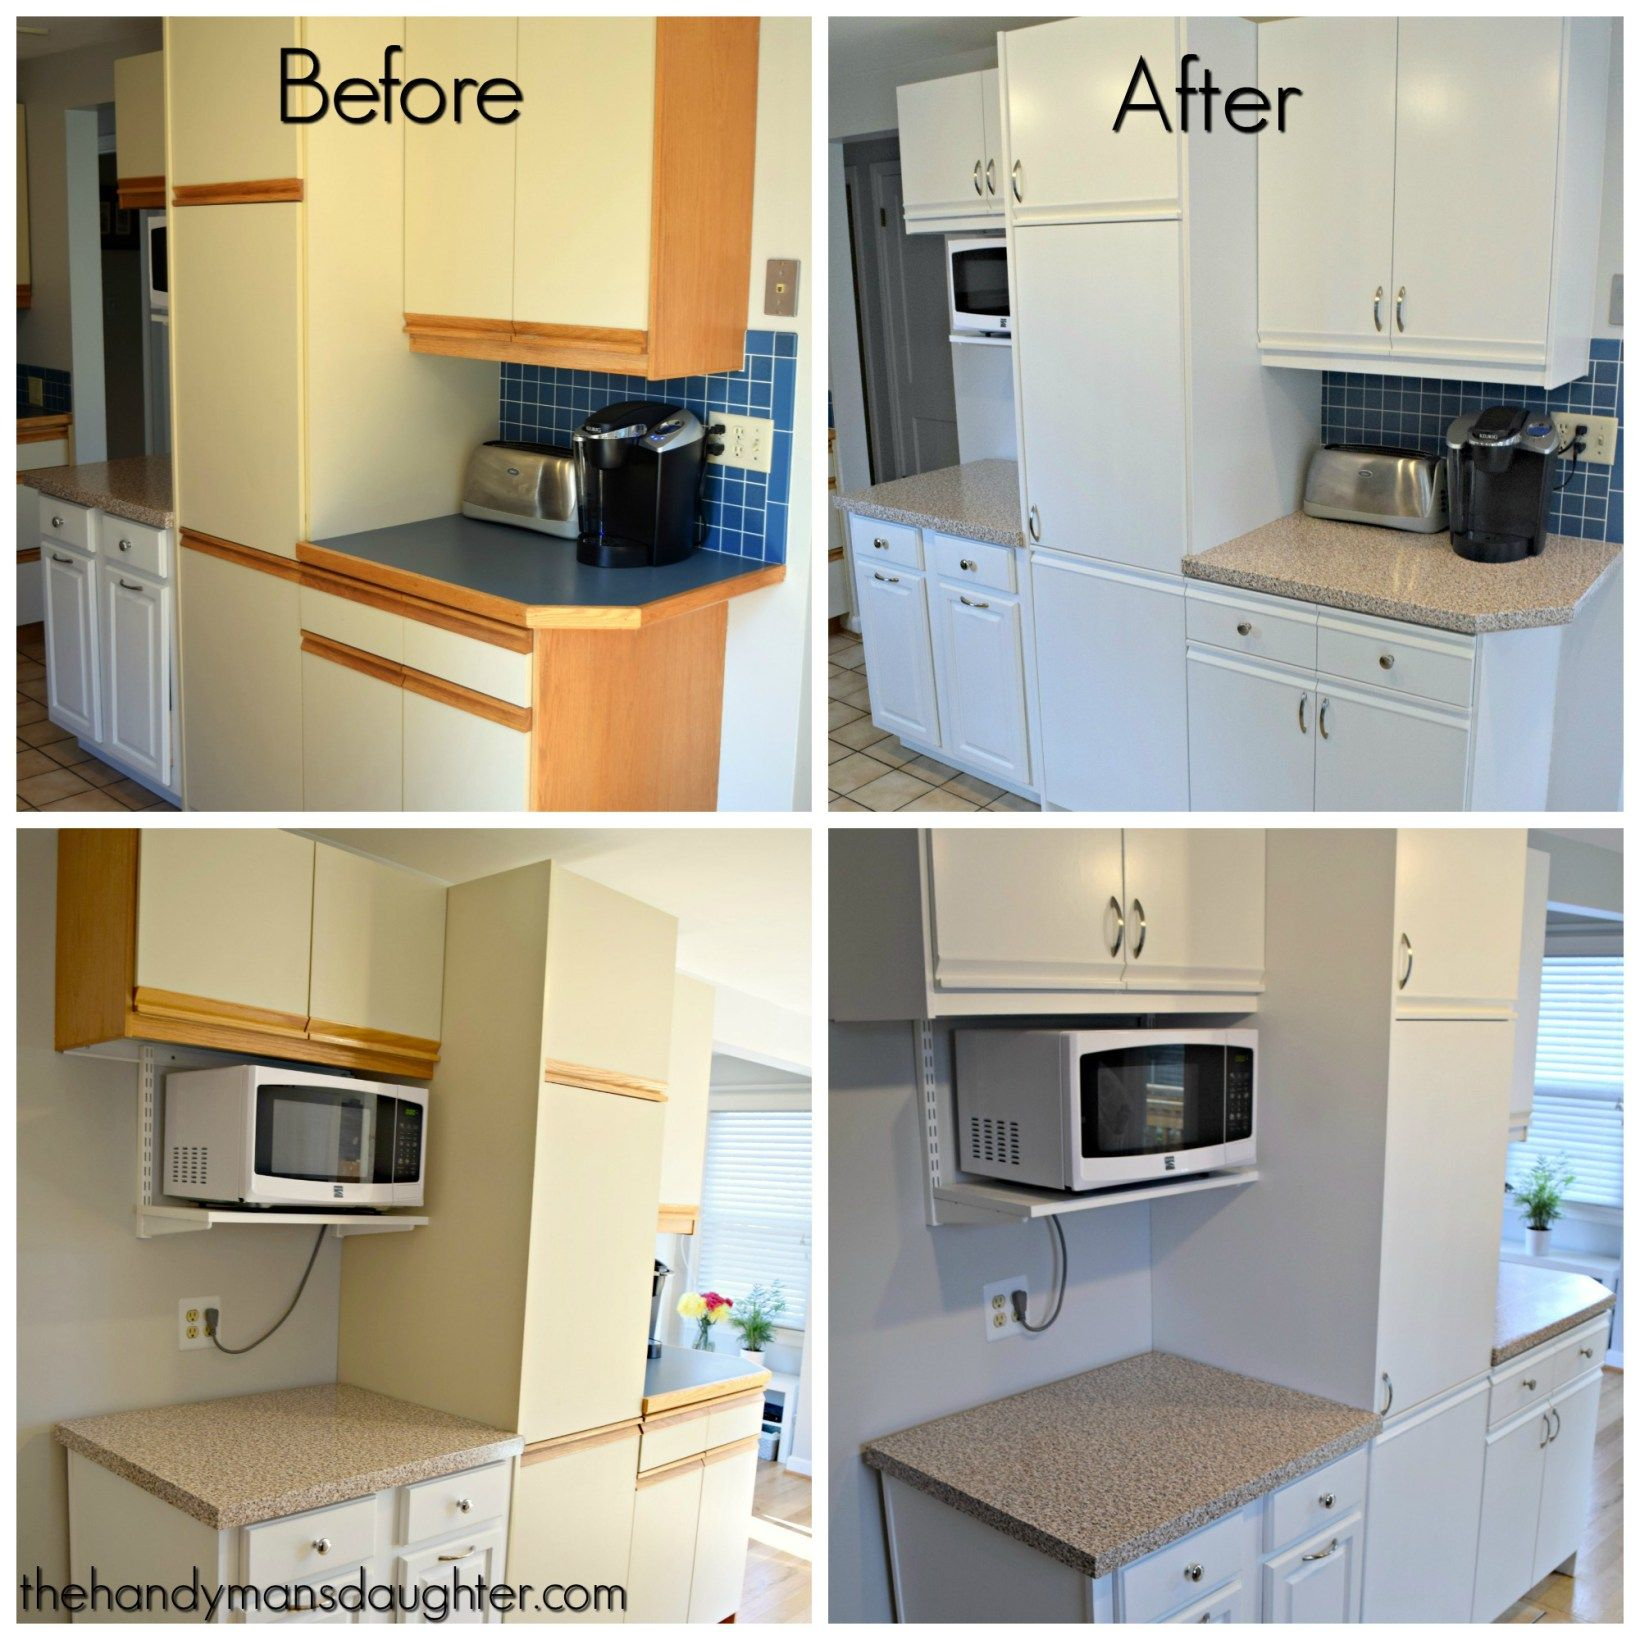 Tips For Updating Melamine Cabinets With Oak Trim Laminate Kitchen Cabinets New Kitchen Cabinets Laminate Kitchen